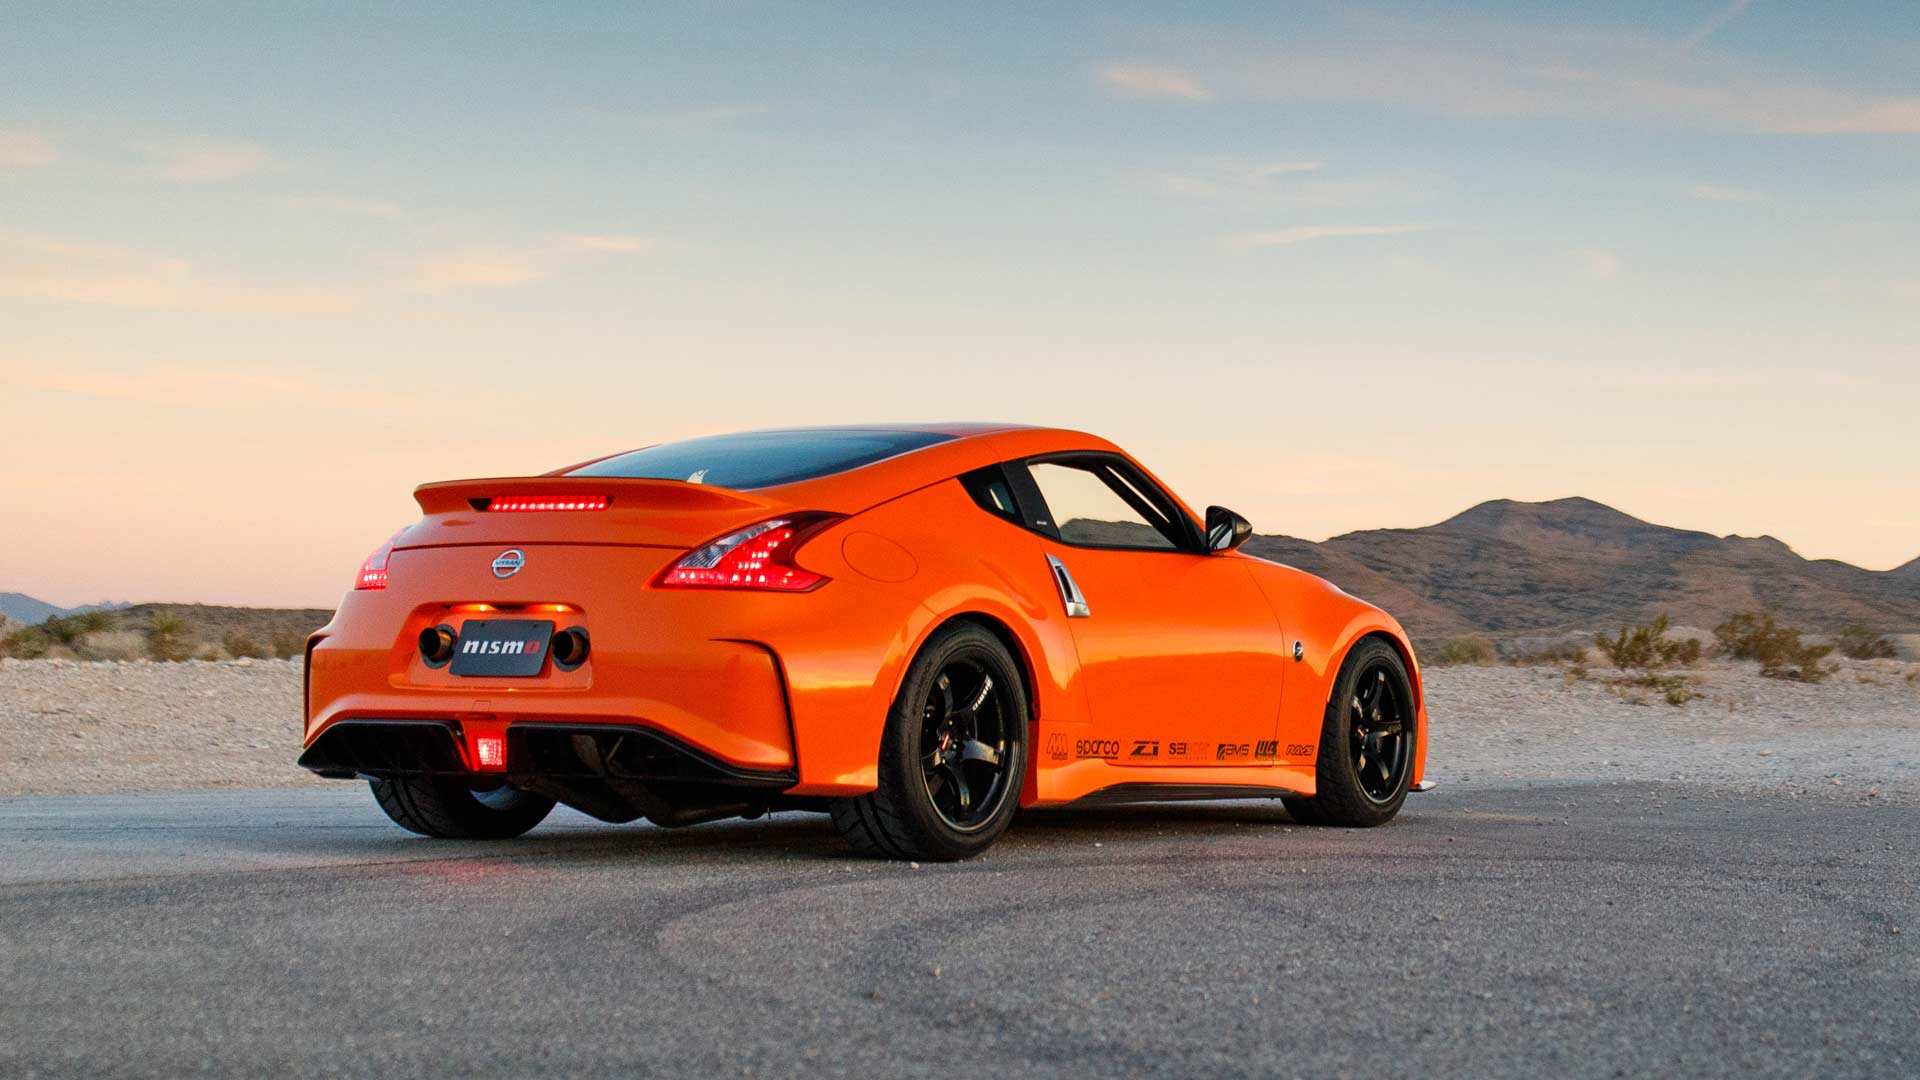 Nissan-370Z-Project-Clubsport-23_5